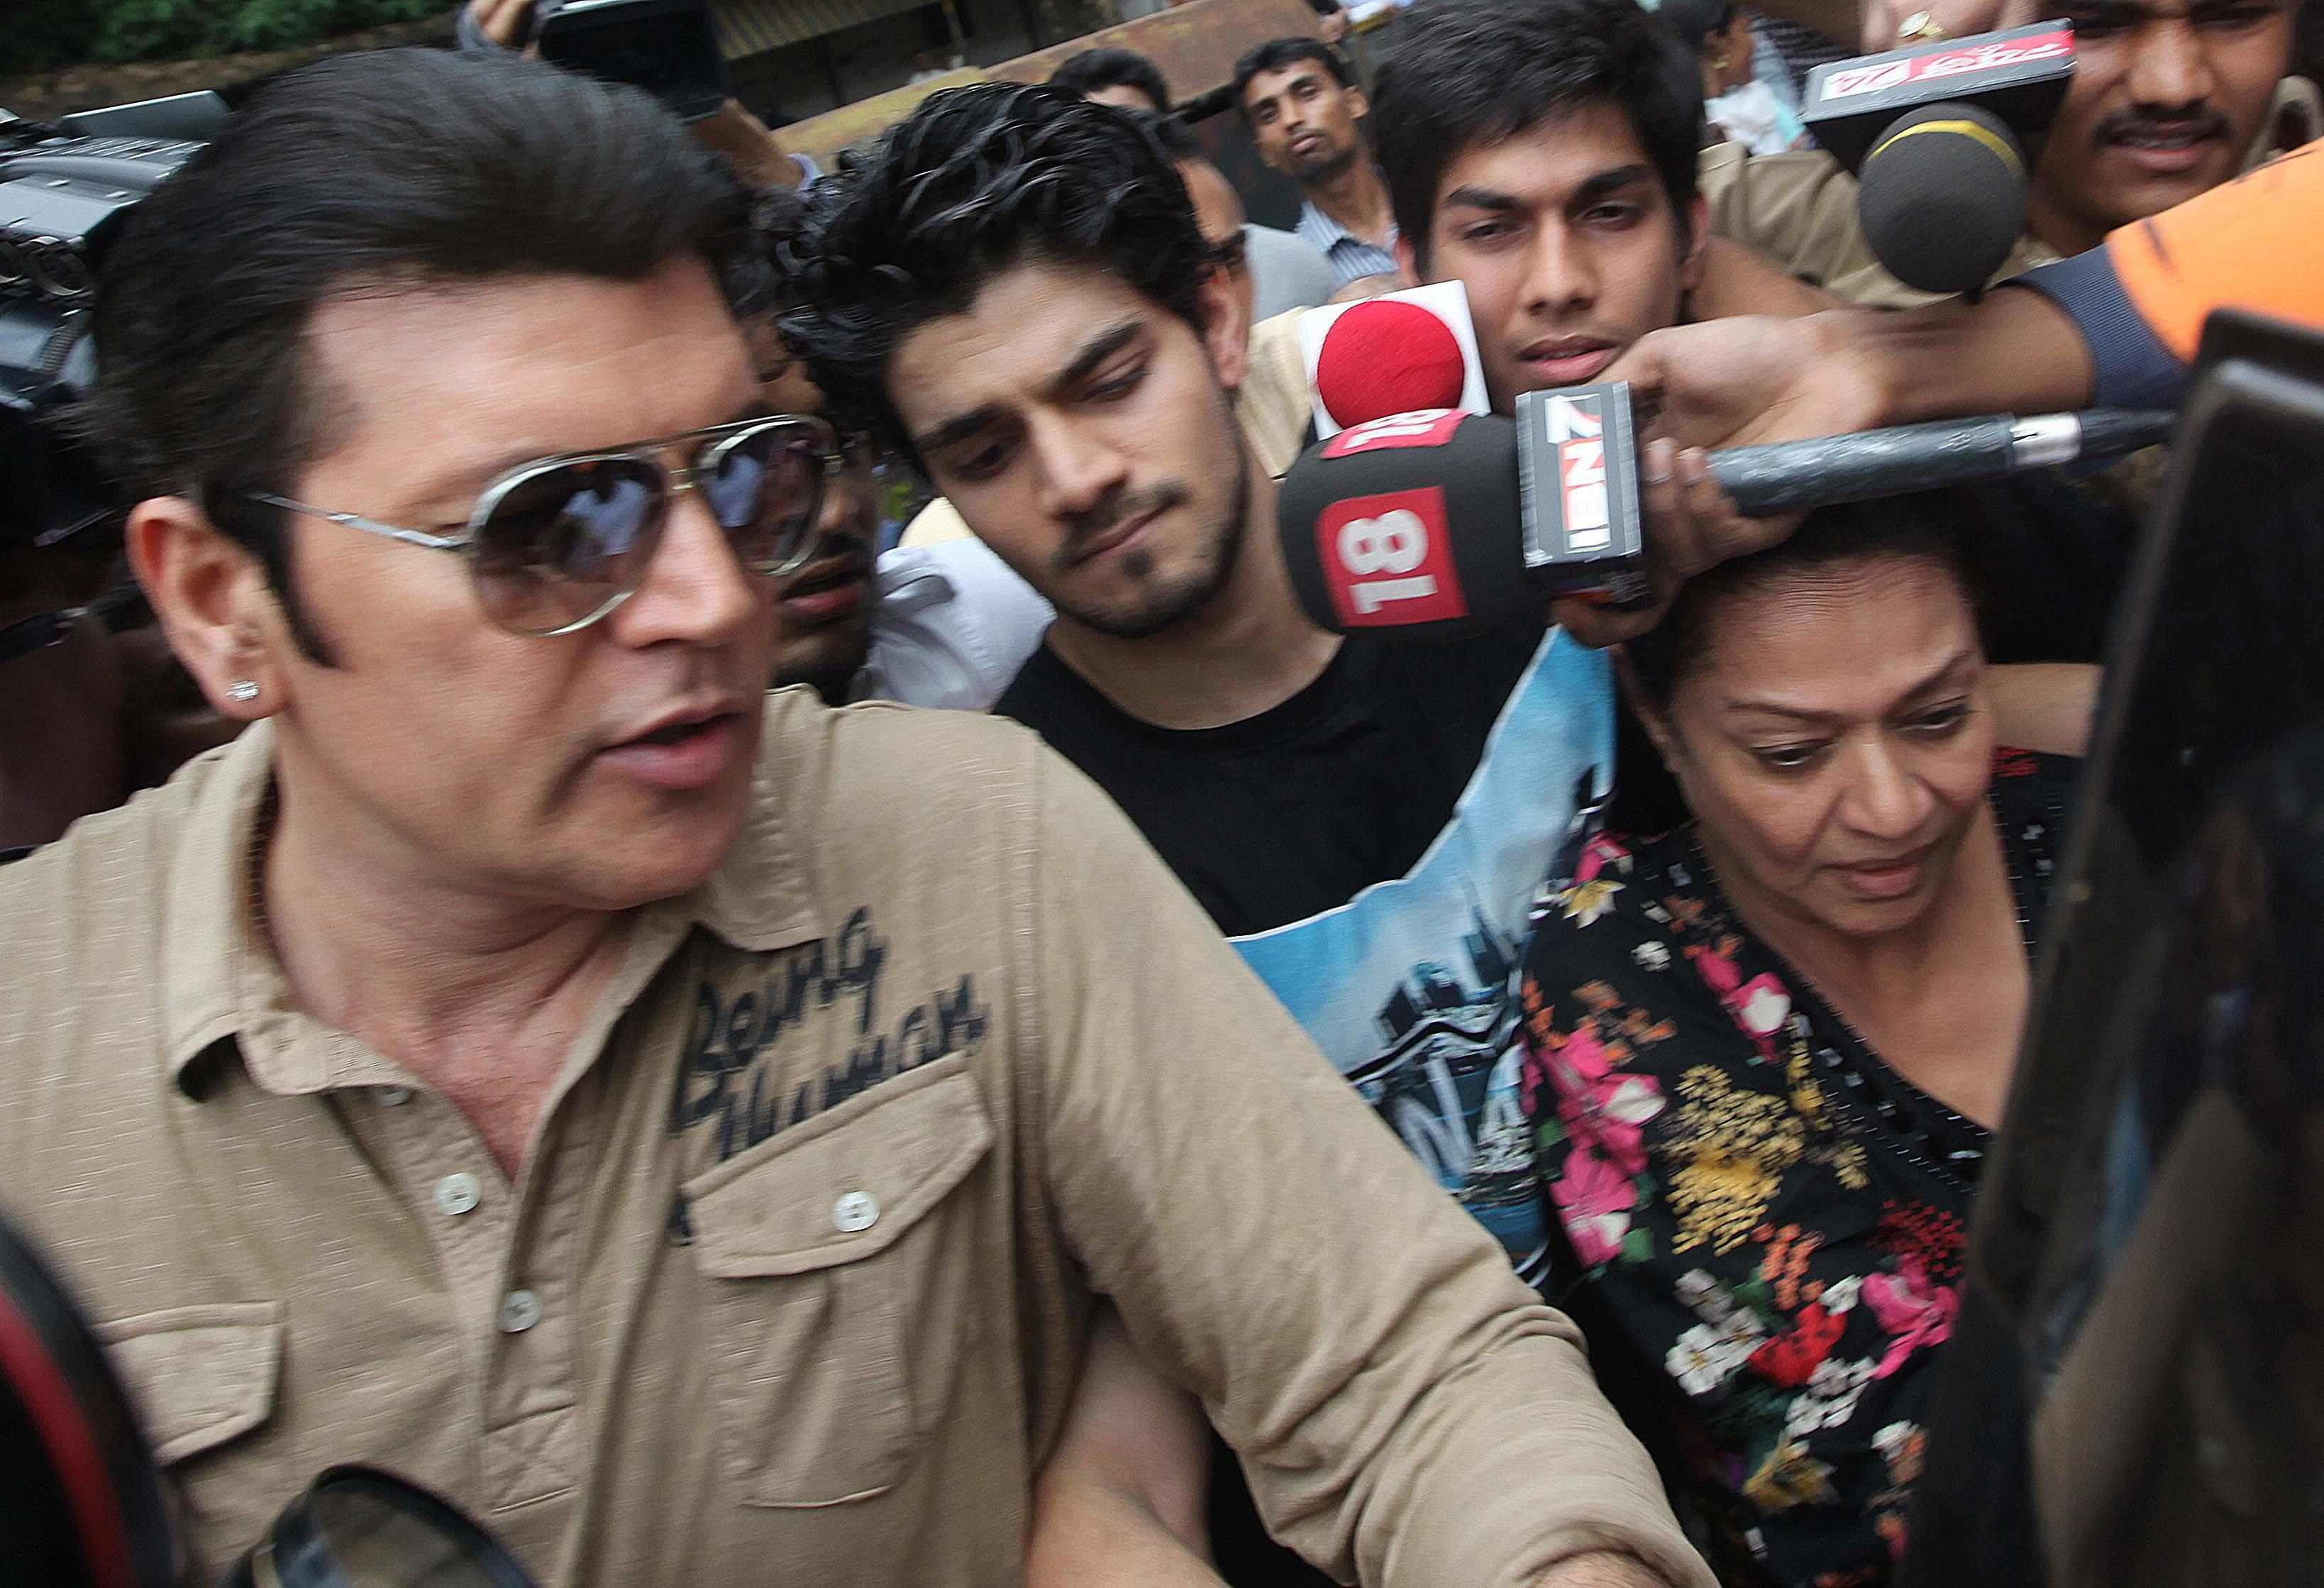 Aspiring Bollywood actor Suraj Pancholi, the son of Bollywood acting couple Aditya Pancholi and Zarina Wahab, released from Arthar road jail three weeks after being arrested over a possible role in the suicide of his actress girlfriend Jiah Khan. Express photo by Ganesh Shirsekar, 02-07-2013. Mumbai